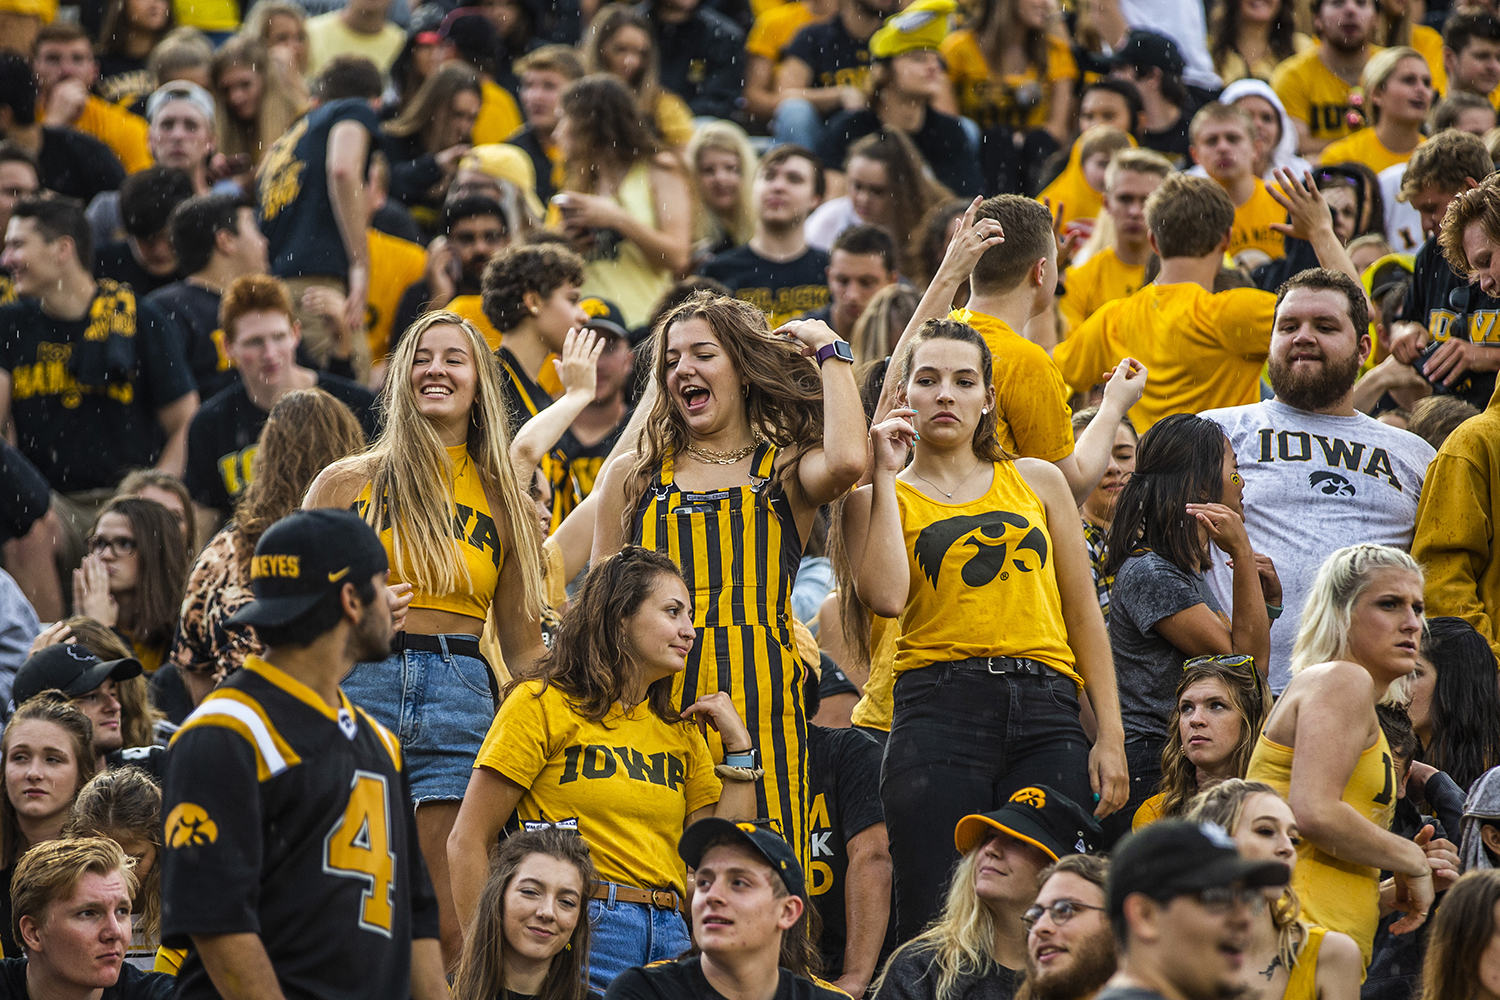 Fans+dance+during+the+Iowa+football+game+against+Miami+%28Ohio%29+at+Kinnick+Stadium+on+Saturday%2C+August+31%2C+2019.+The+Hawkeyes+defeated+the+Redhawks+38-14.